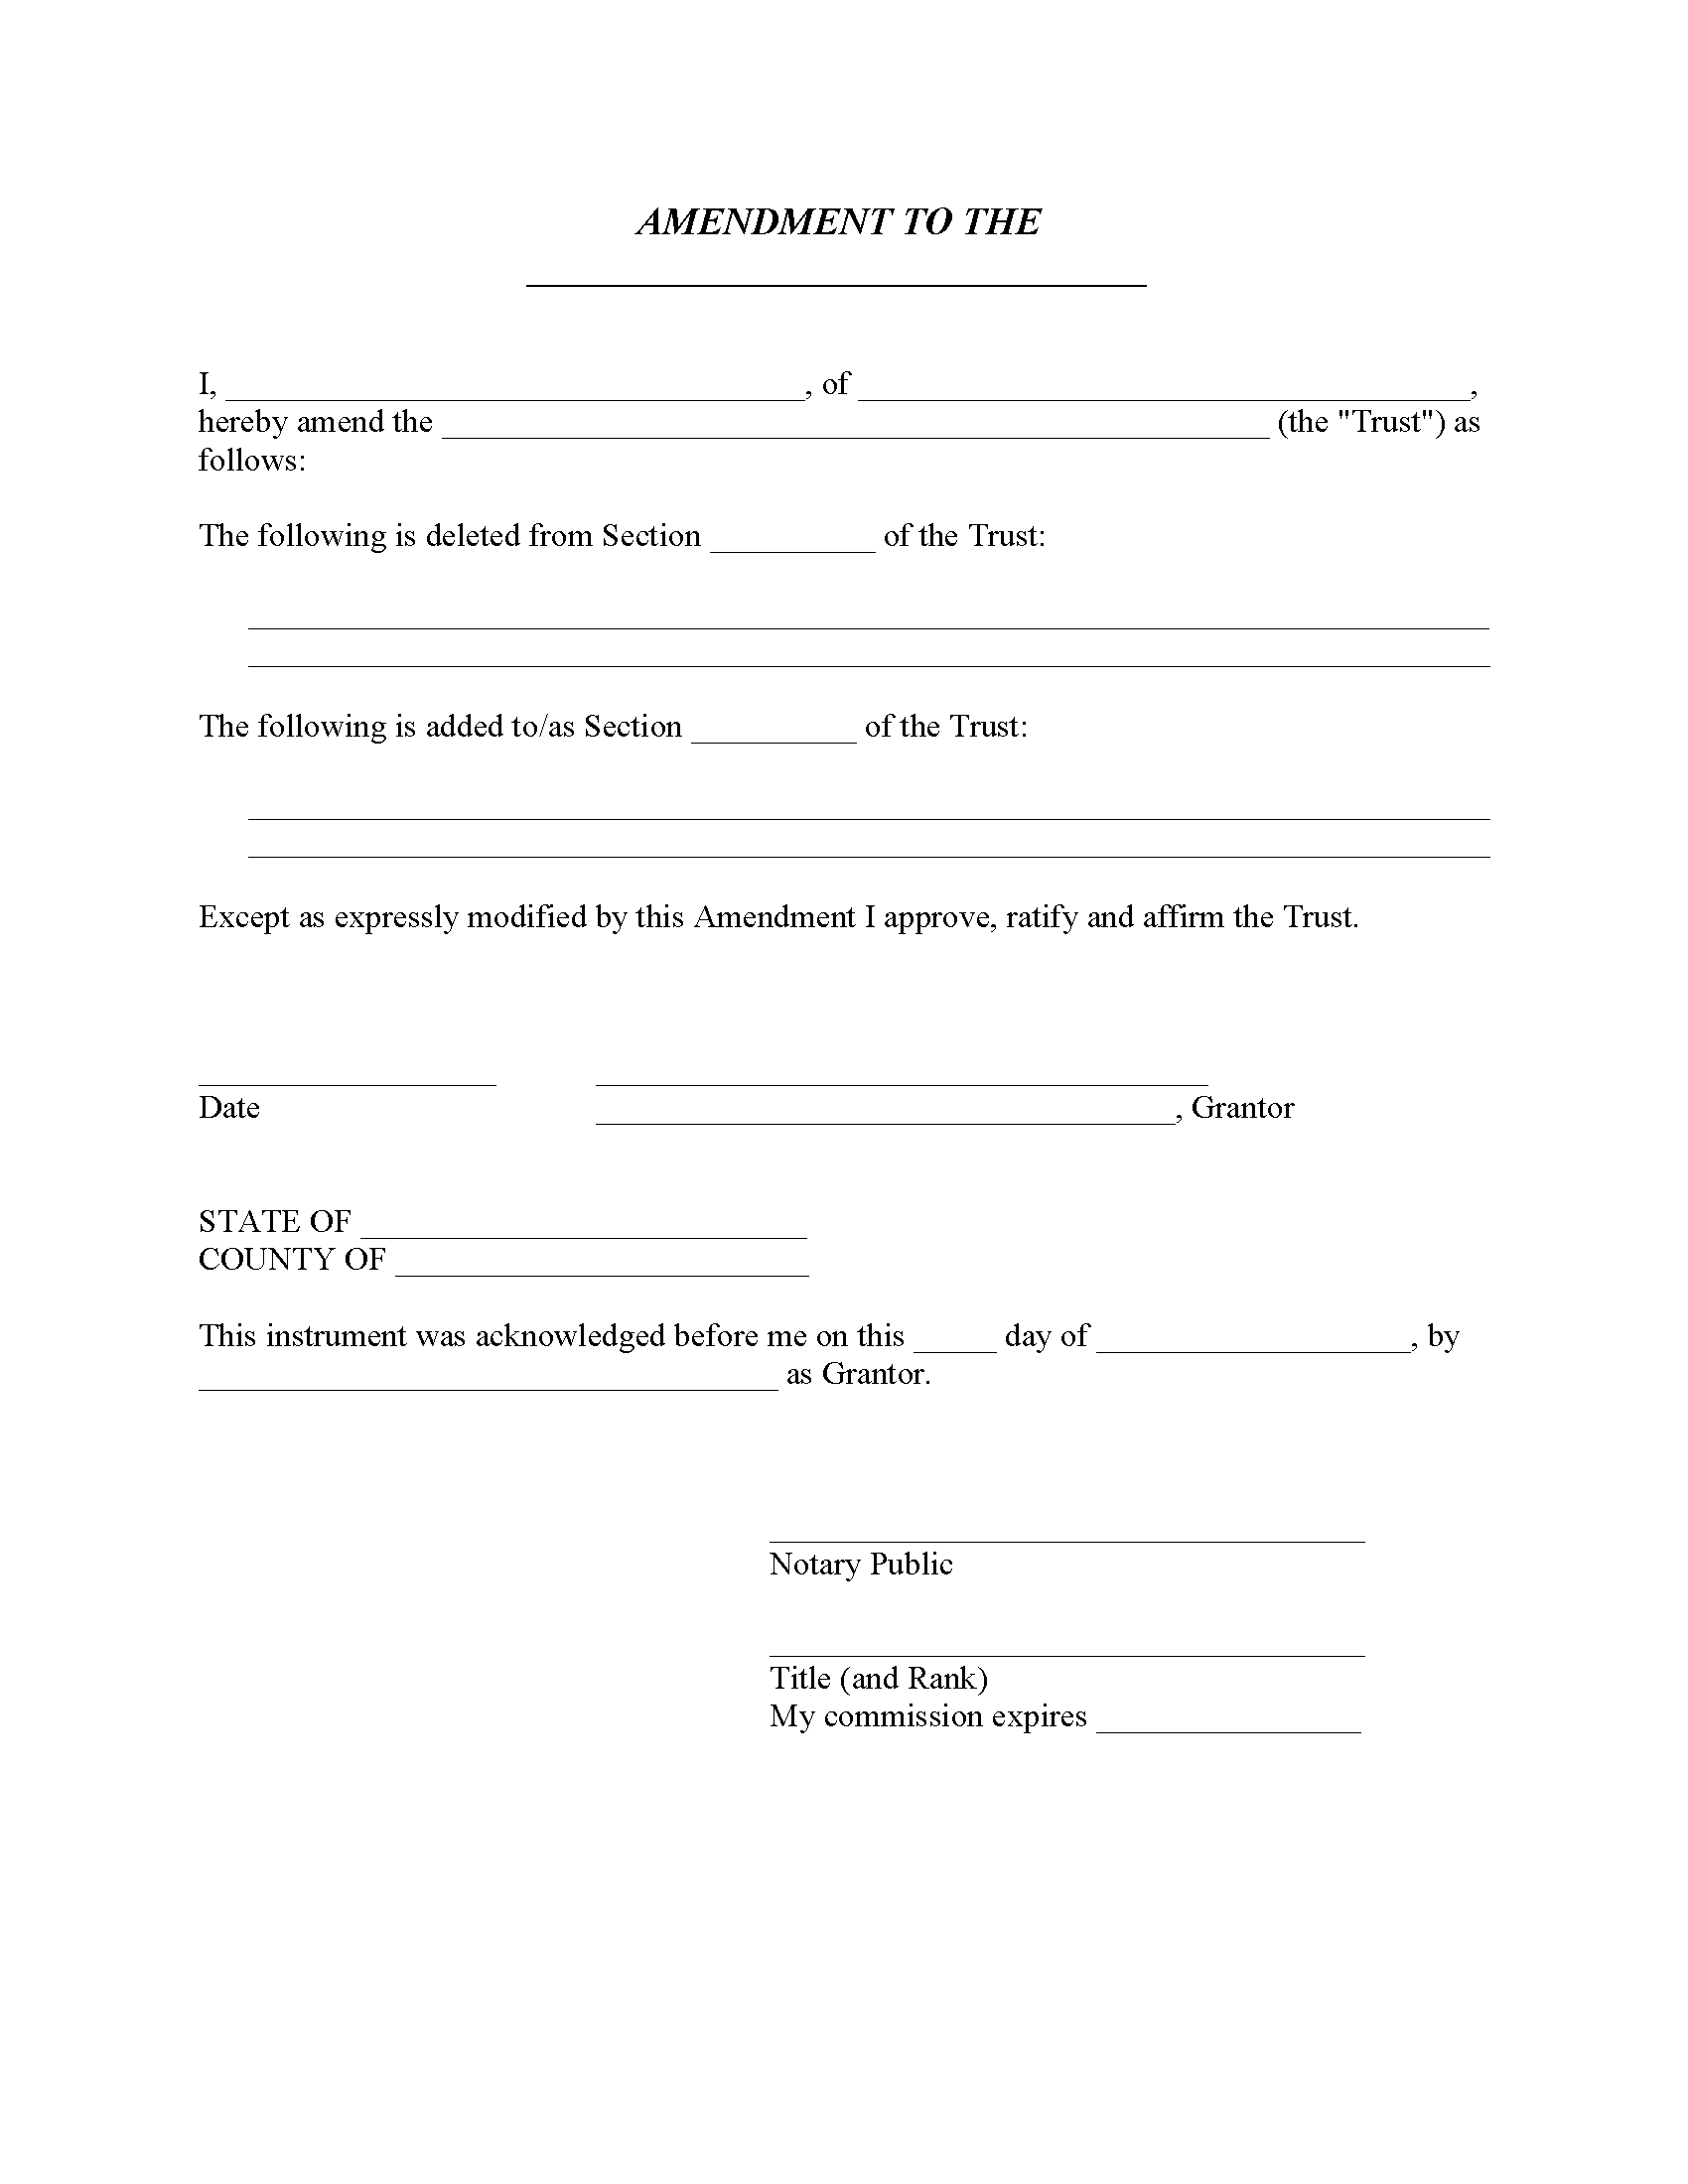 Missouri Amendment To Living Trust Trust Form